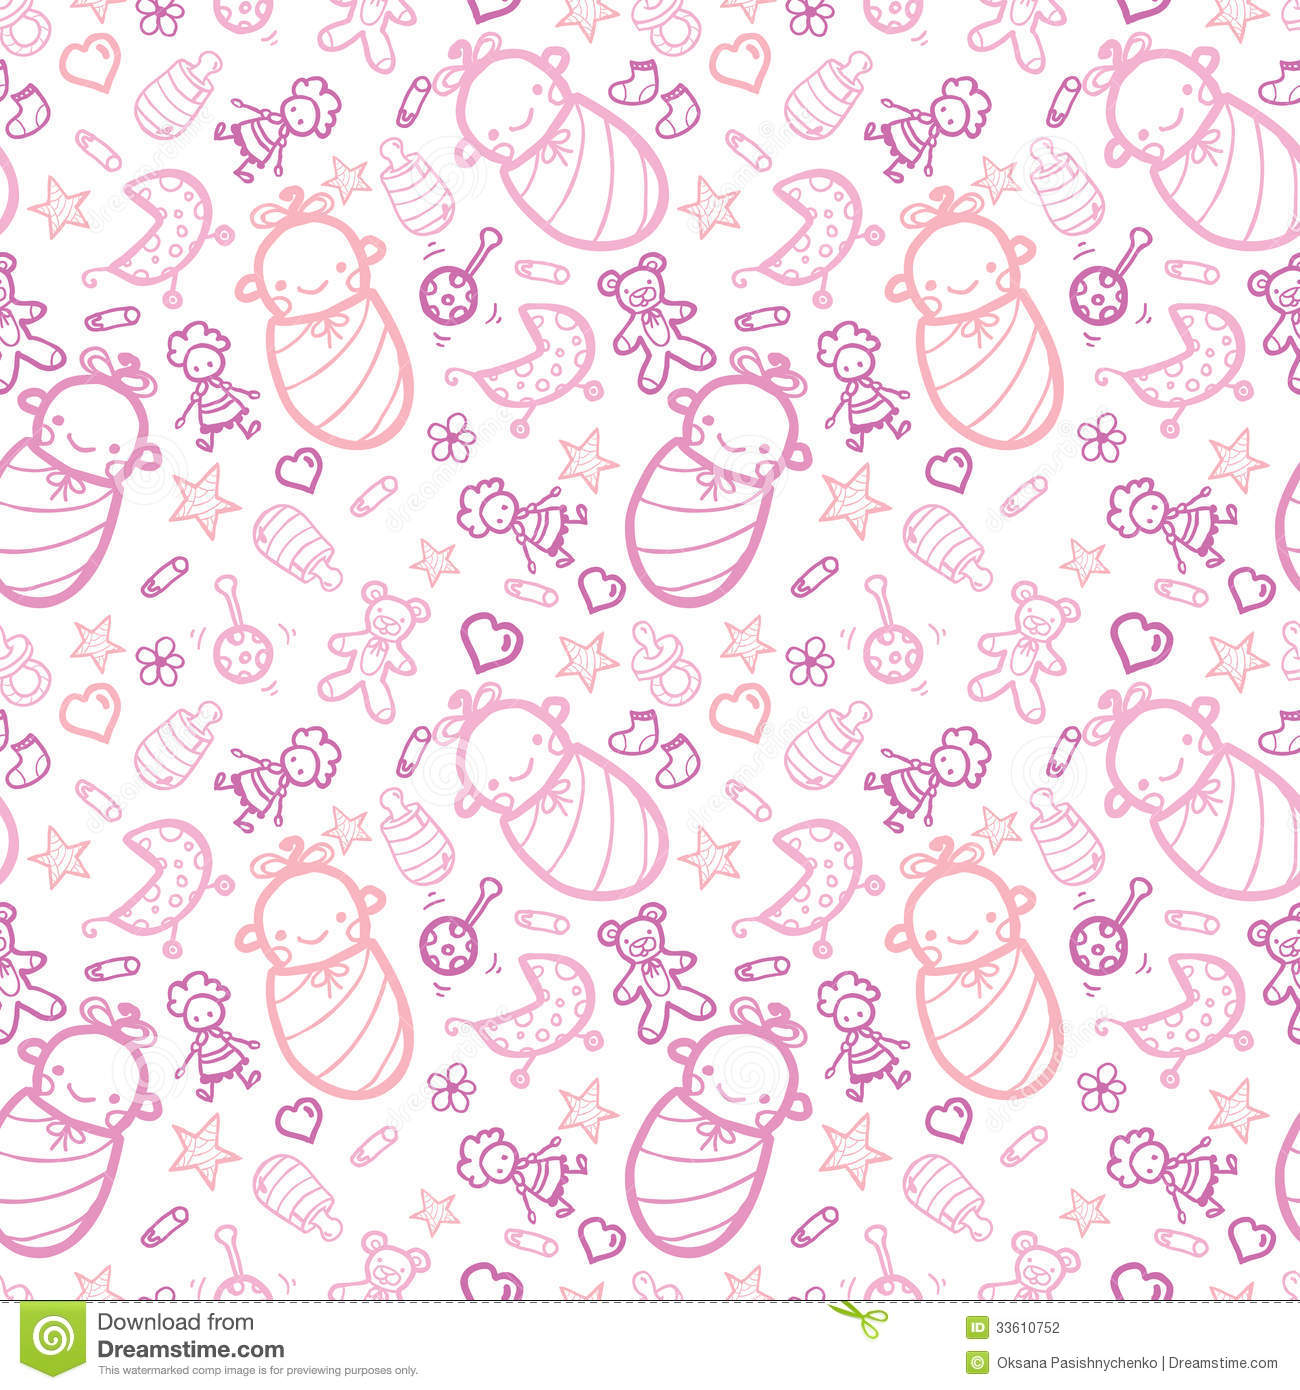 Cute Patterns For Wallpapers 女婴无缝的样式背景 图库摄影 图片 33610752